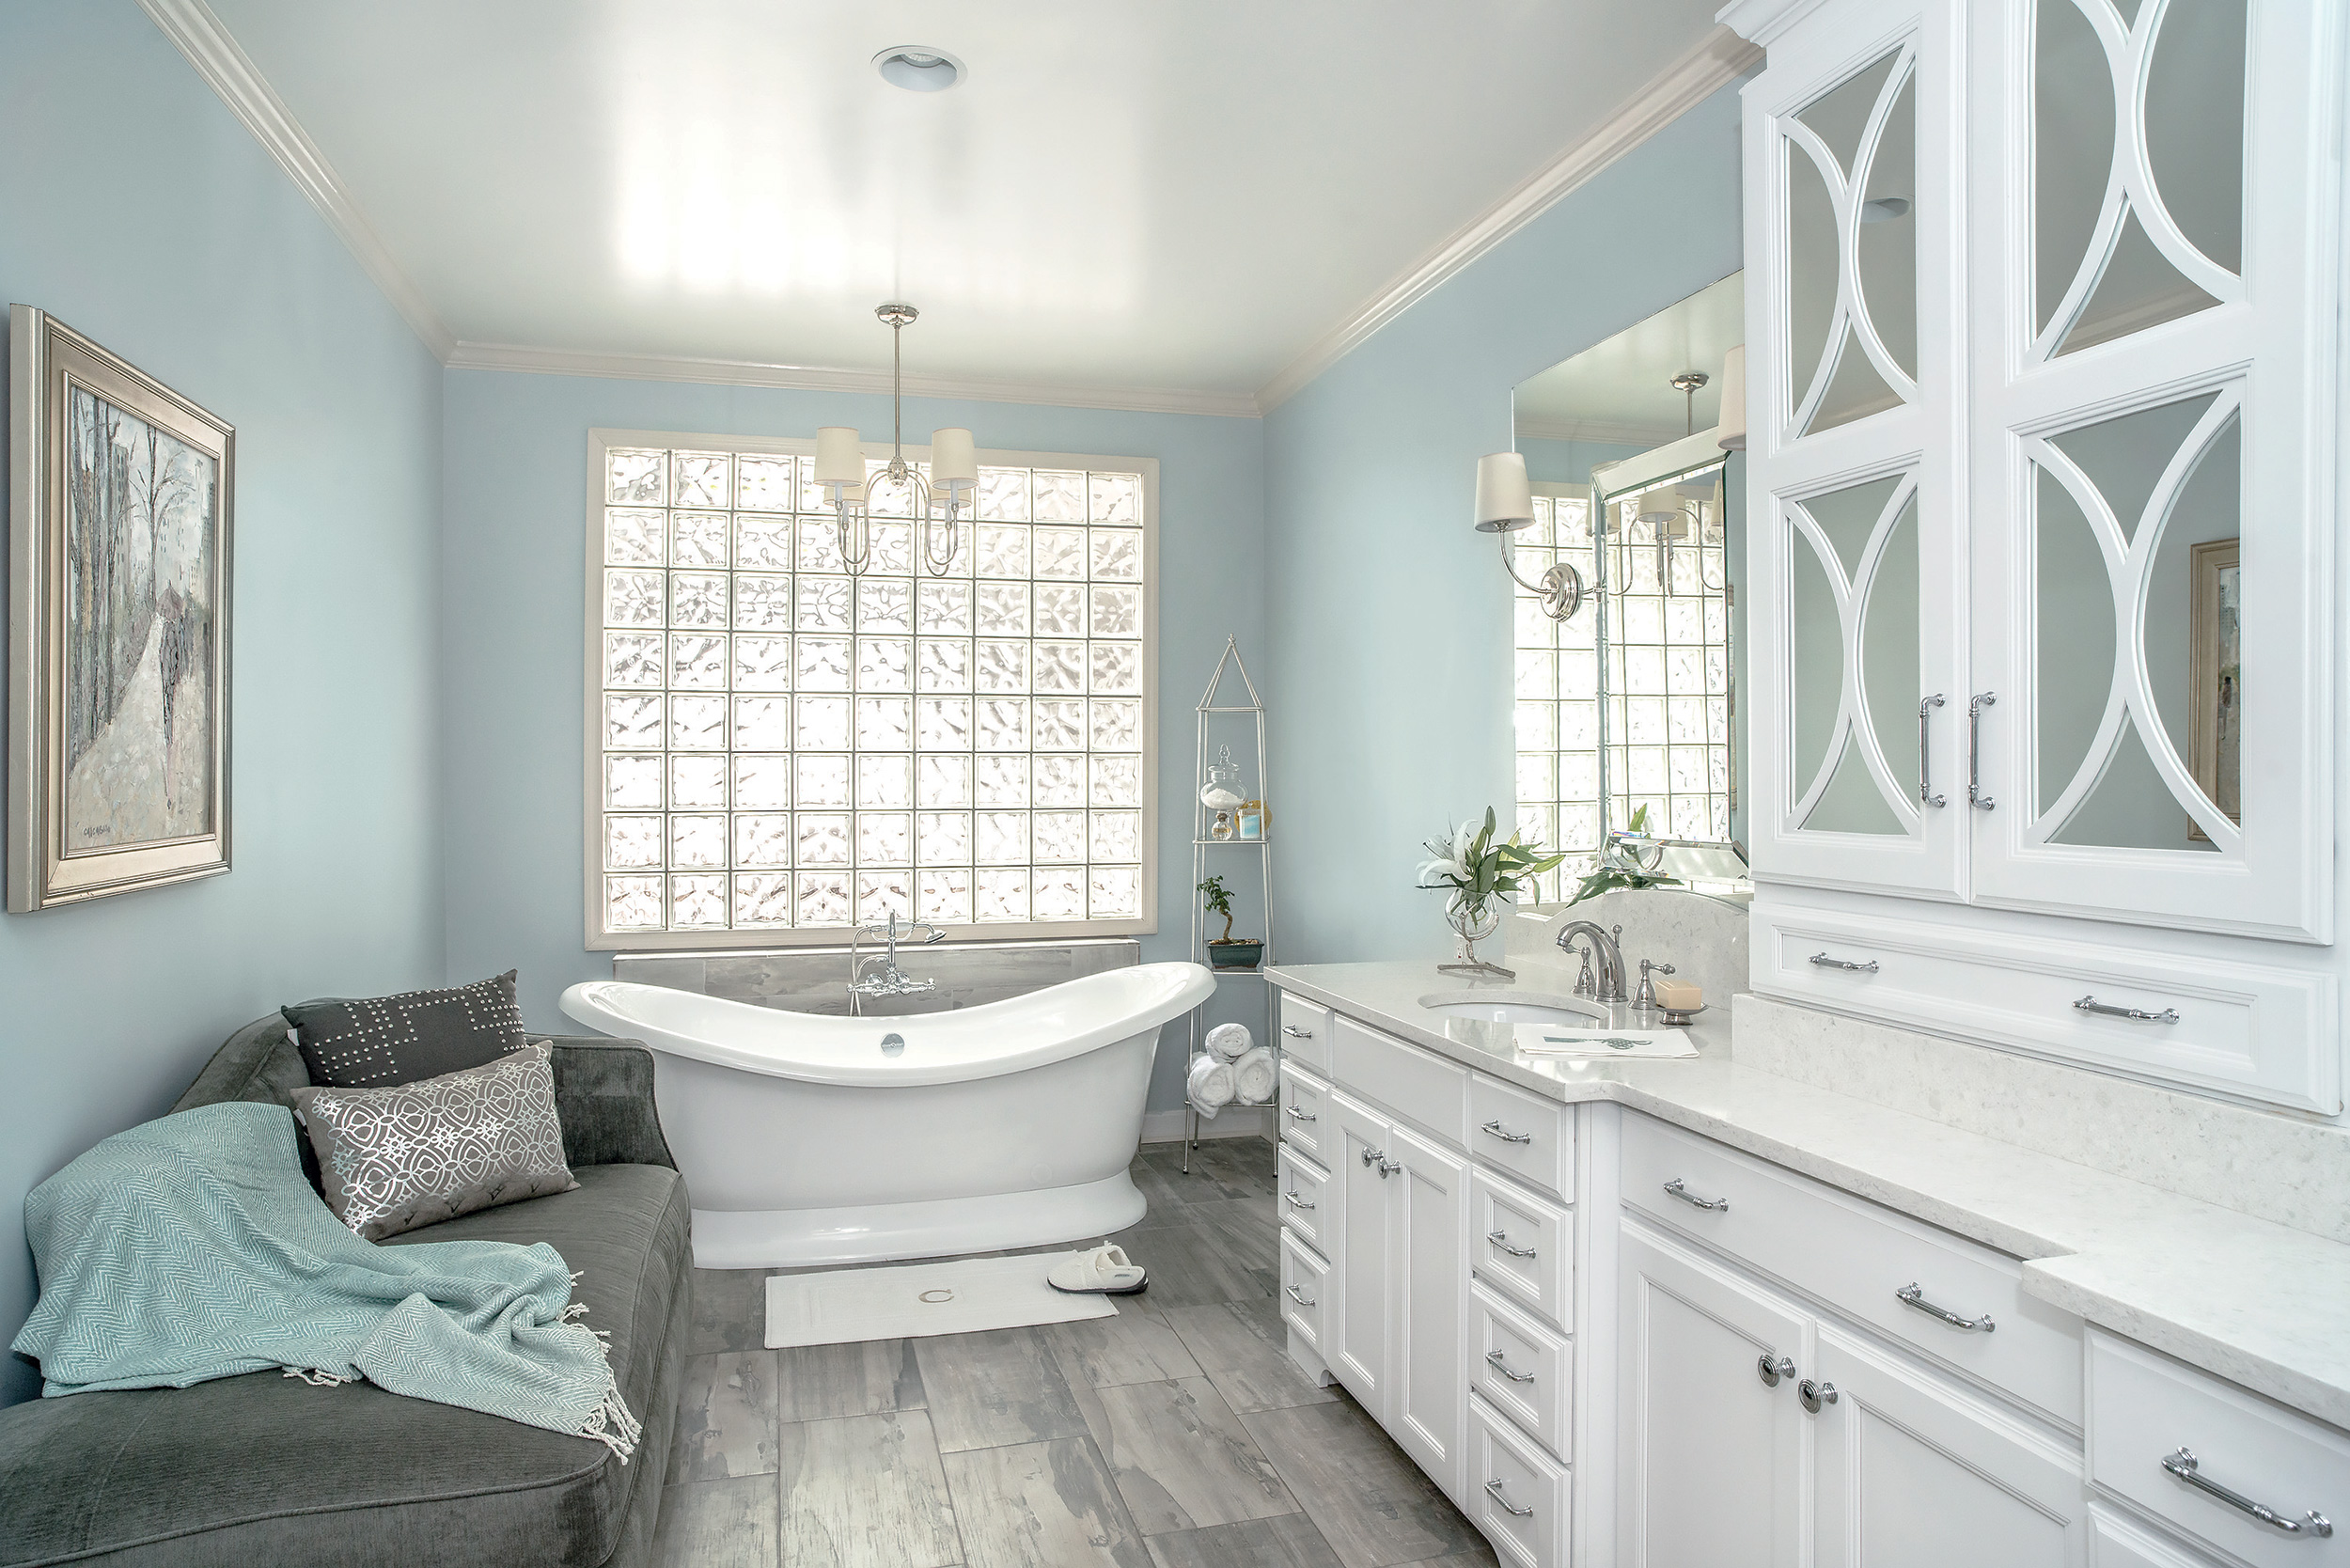 Bathroom trends for 2017 haskell 39 s blog for Bathroom trends